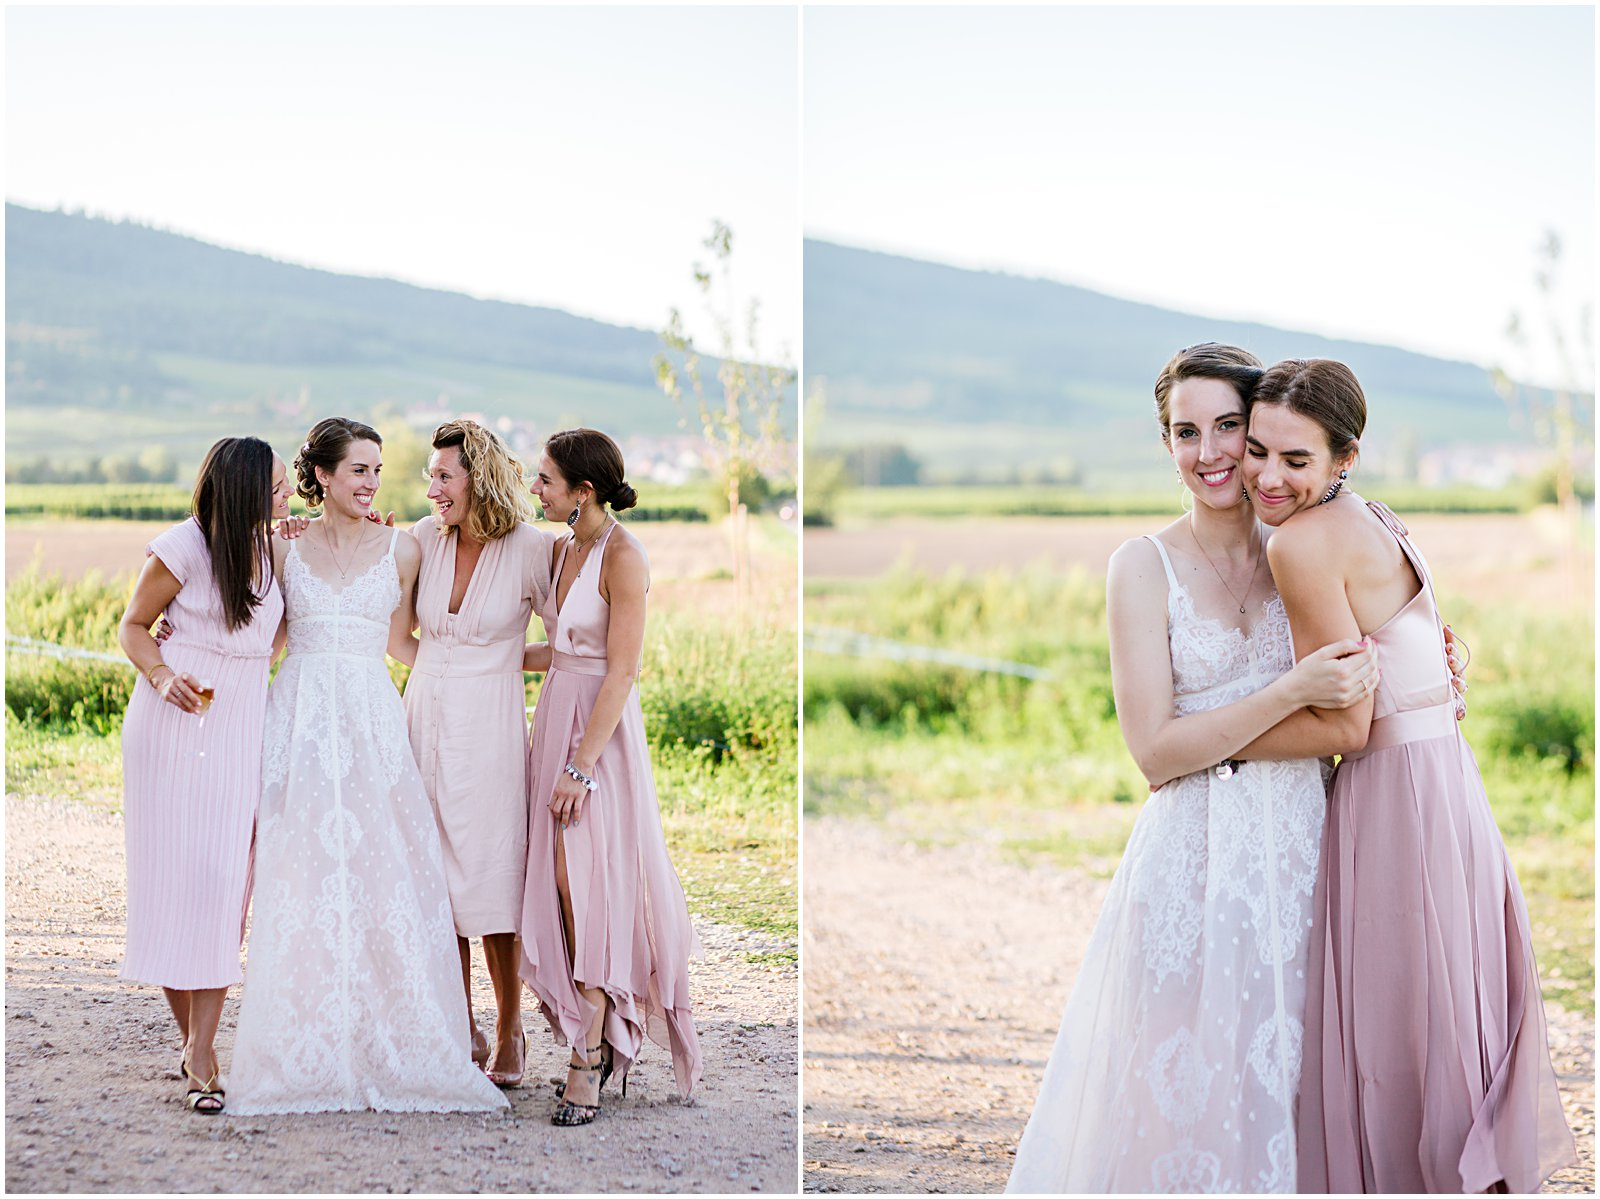 bride and bridesmaids photographed at Achilles Domaine winery in Alsace France photographed by Helena Woods